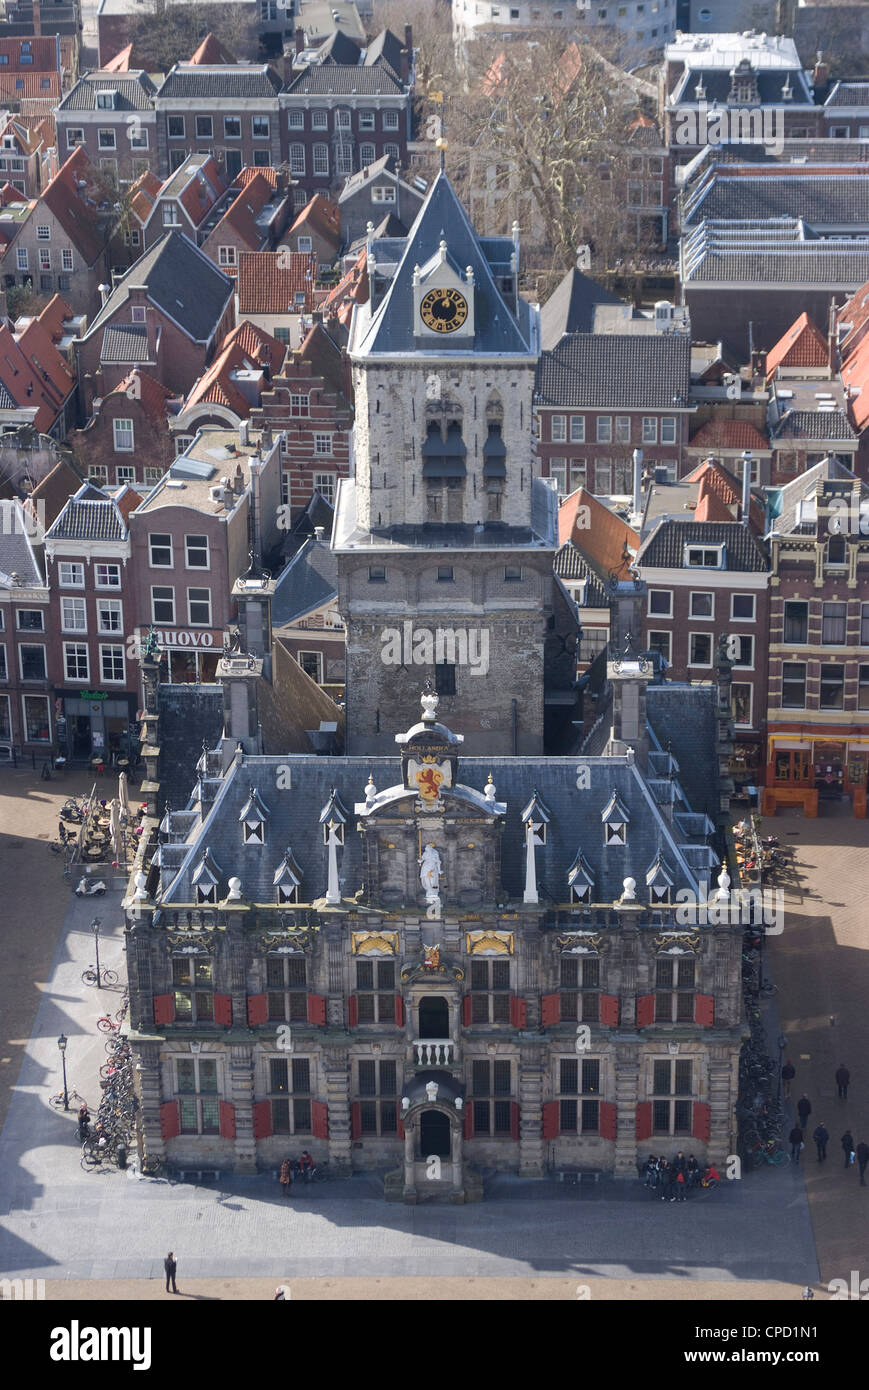 View over the city and the Stadhuis from the viewing platform of the Nieuwe Kerk (New Church), Delft, Netherlands, - Stock Image